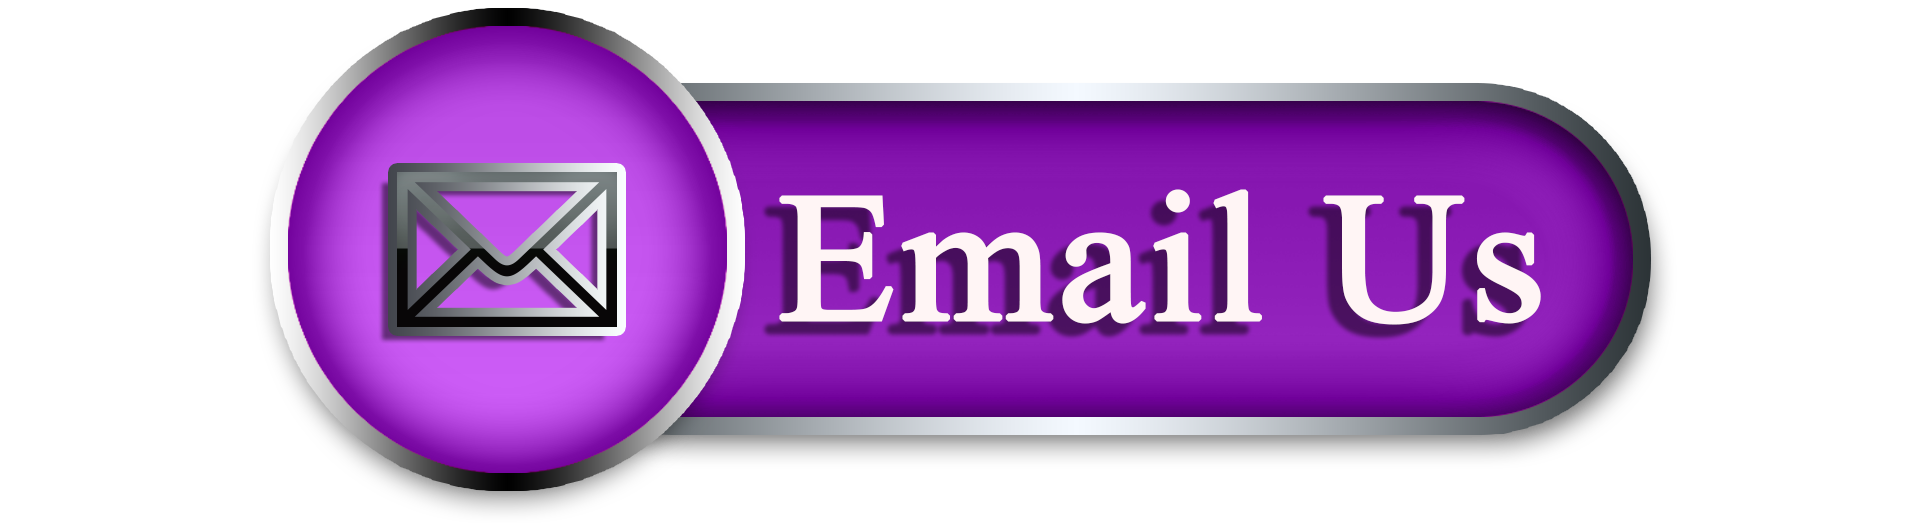 Purple and black email us image with an envelope on the Pro Tax & Accounting Contact Us page